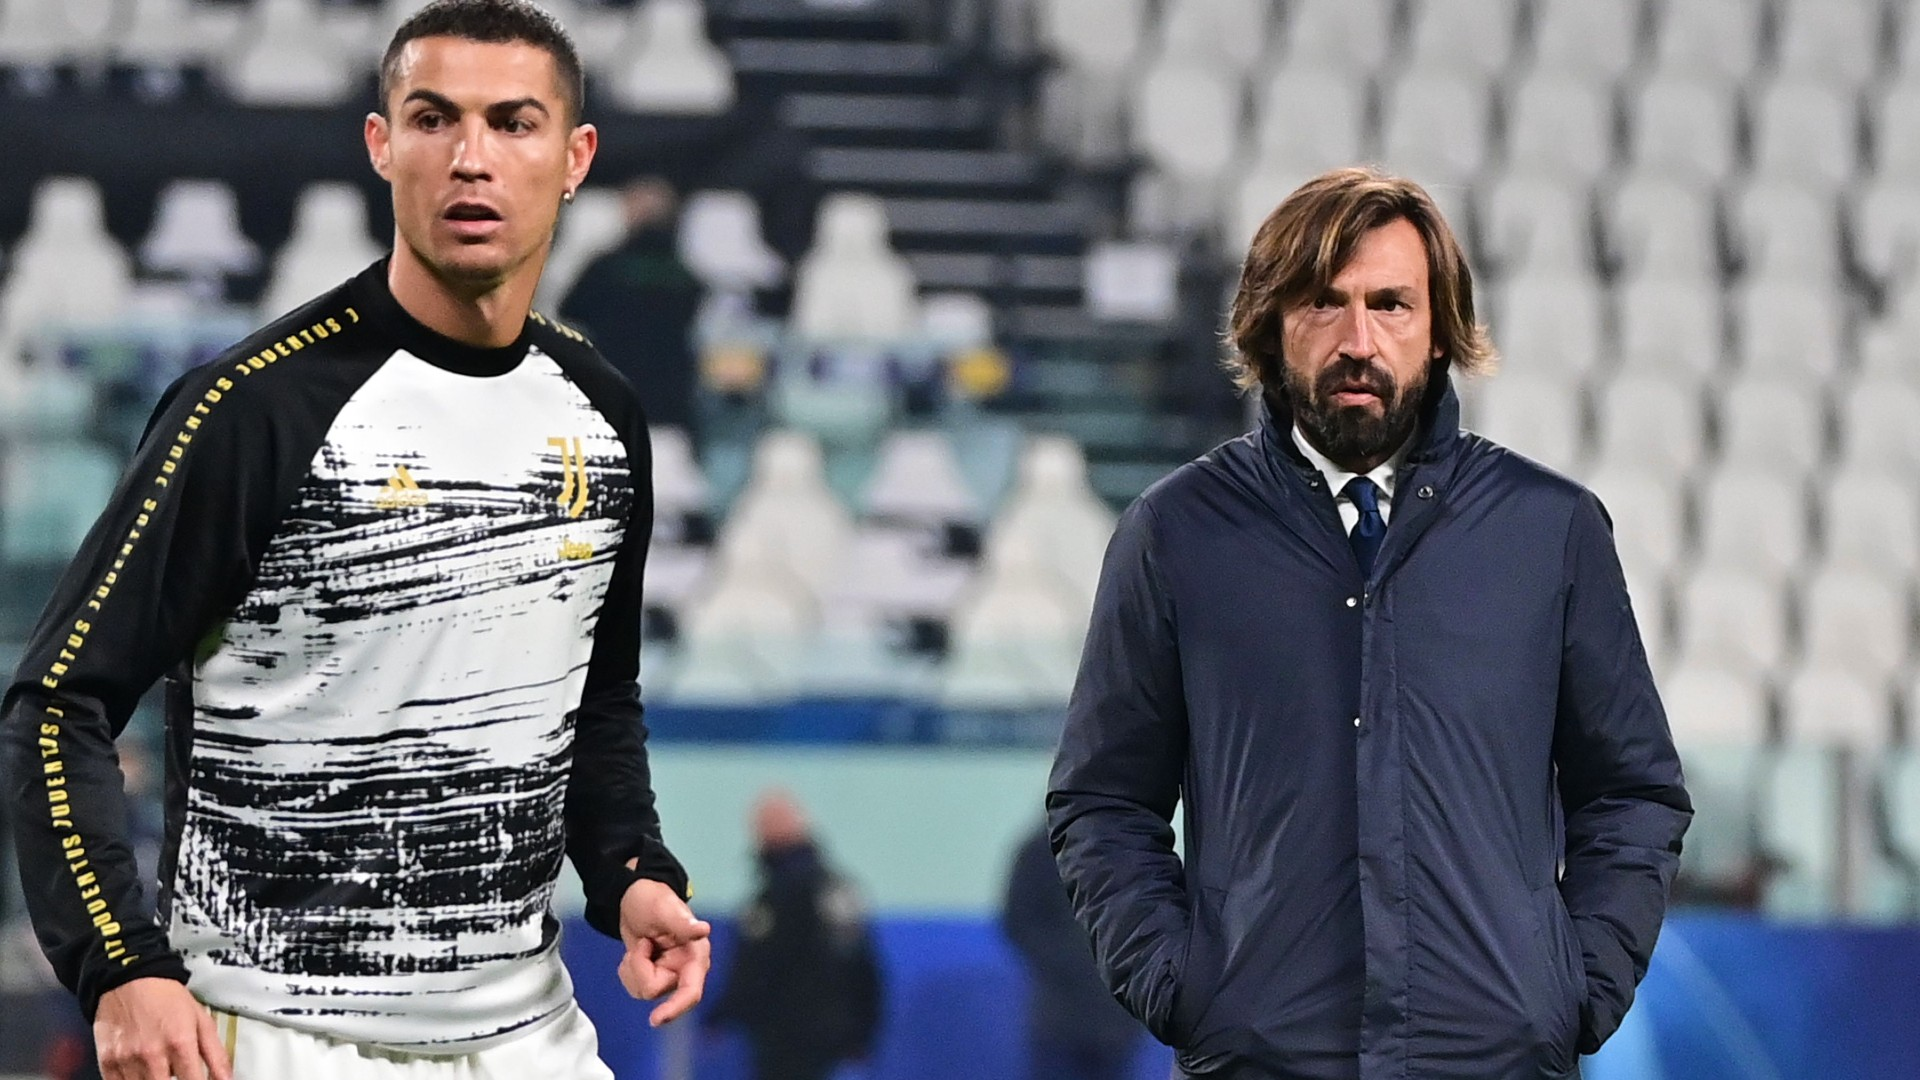 'There's no clause stopping me from subbing Ronaldo out' - Pirlo defends taking Juventus star off pitch in win over Inter